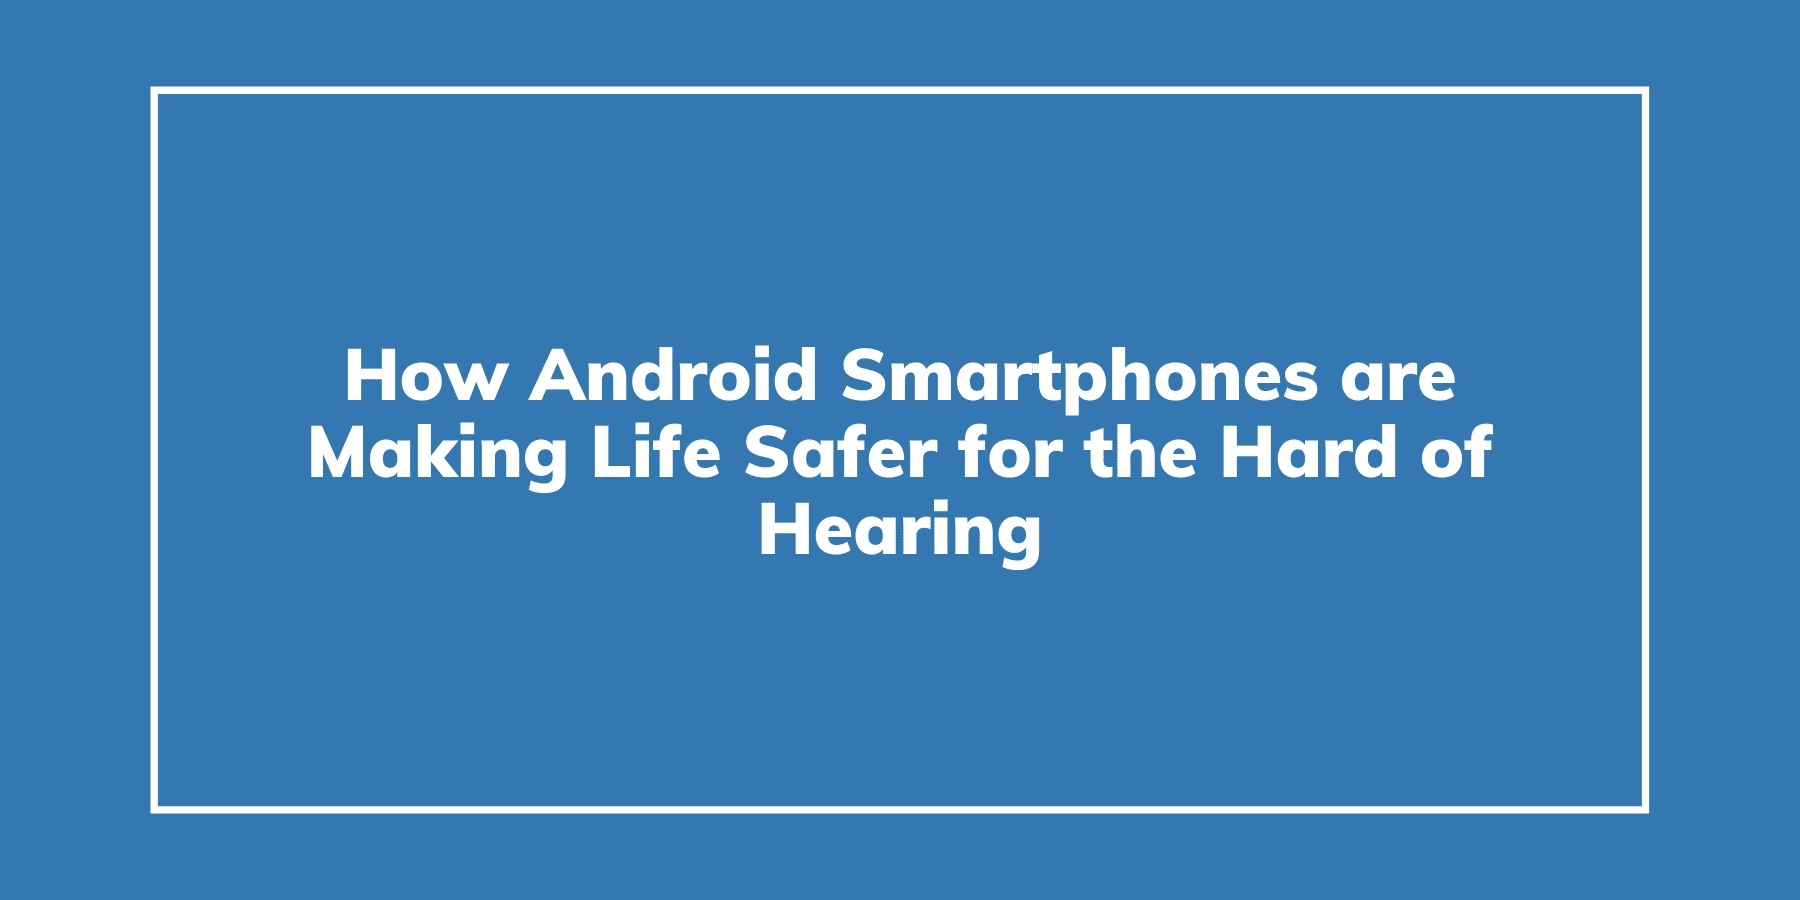 How Android Smartphones are Making Life Safer for the Hard of Hearing